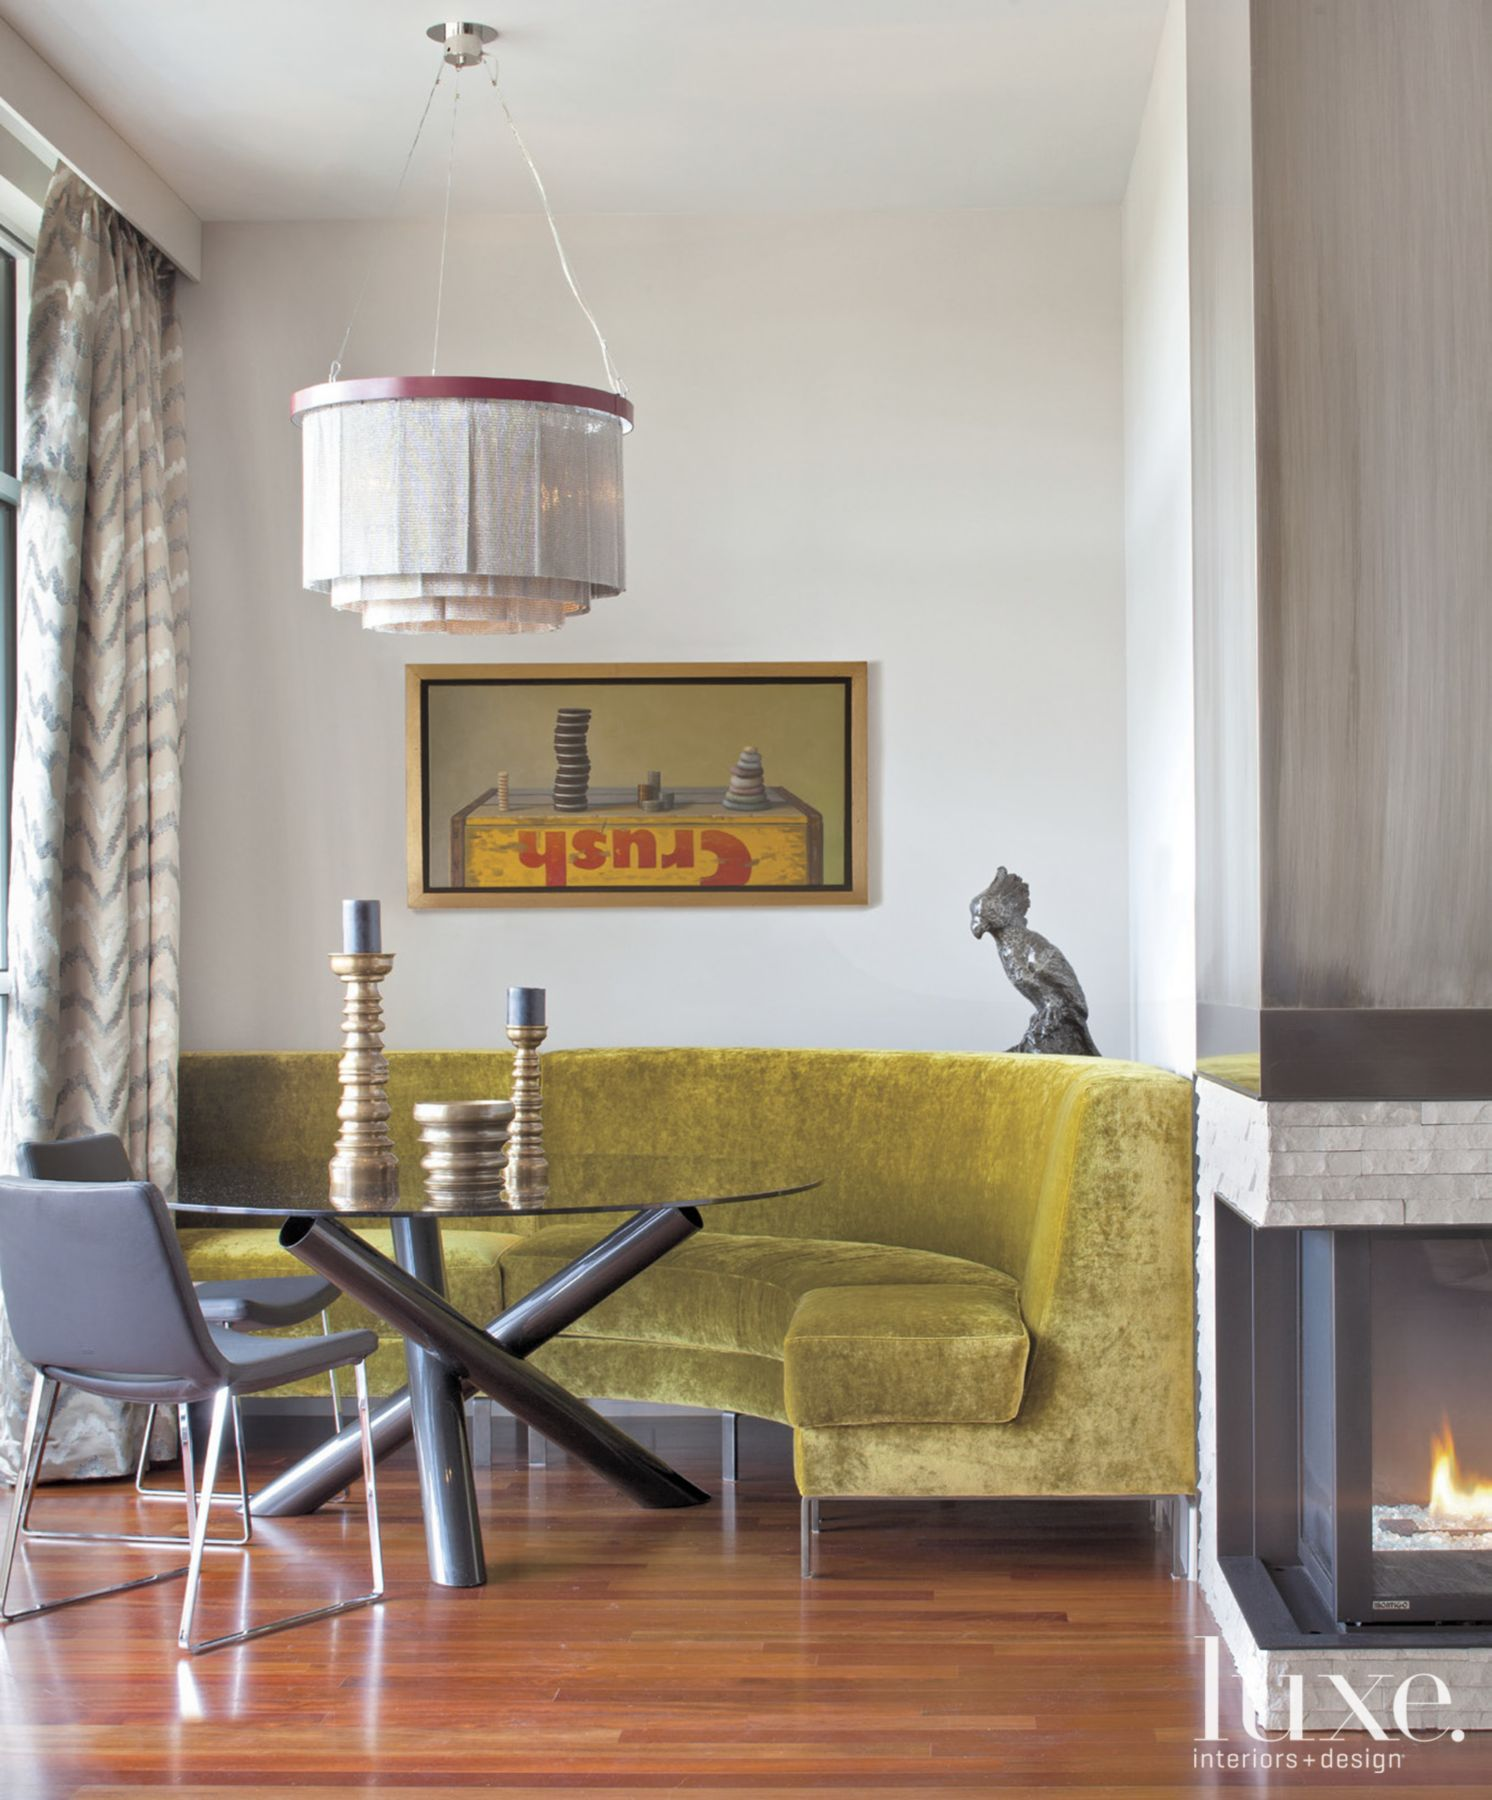 10 More Reasons To Consider Modern Sofas For Your Dining Room modern sofas 10 More Reasons To Consider Modern Sofas For Your Dining Room 10 More Reasons To Consider Modern Sofas For Your Dining Room 6